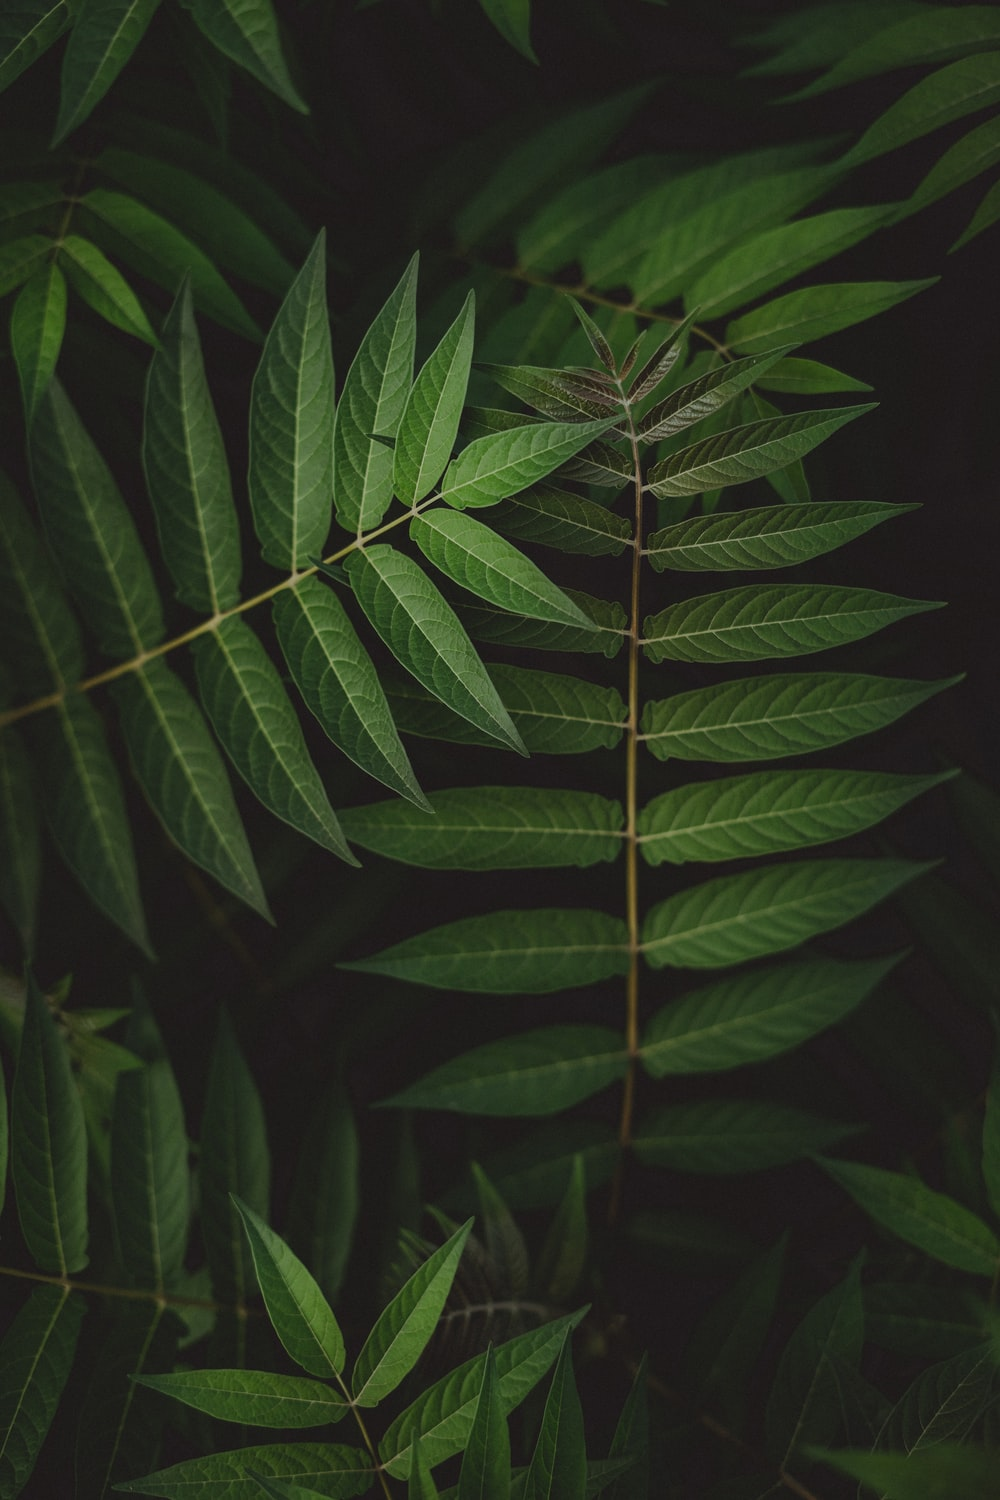 green leaves in close up photography